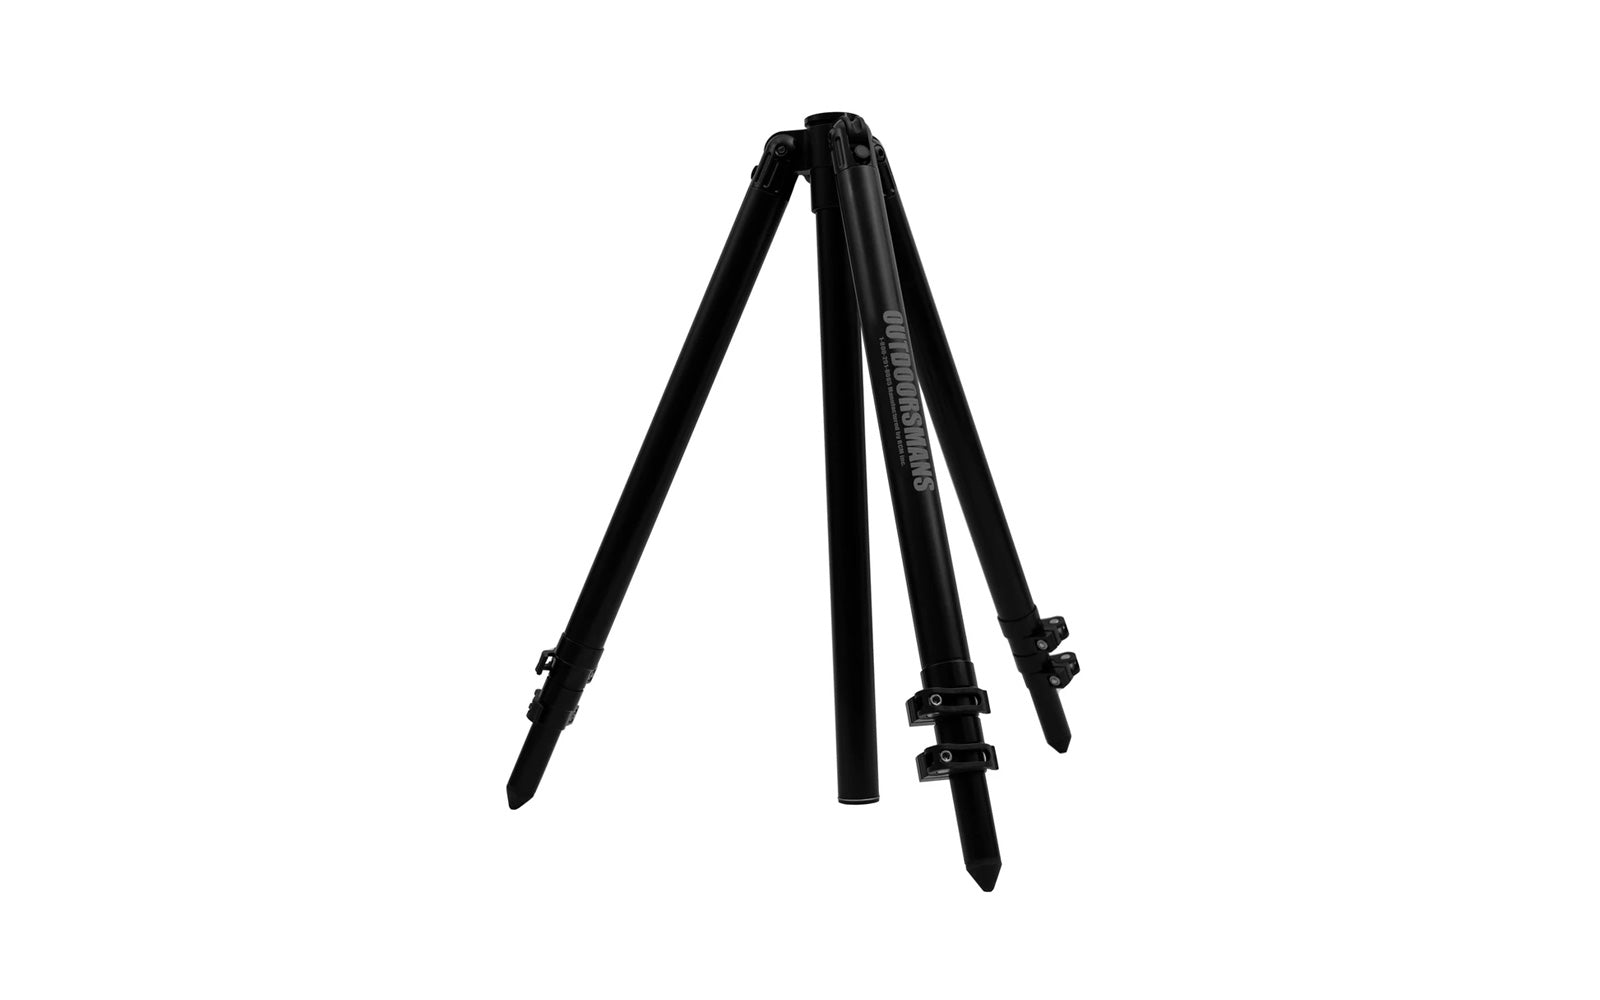 best hunting tripods of 2021 - Outdoorsmans